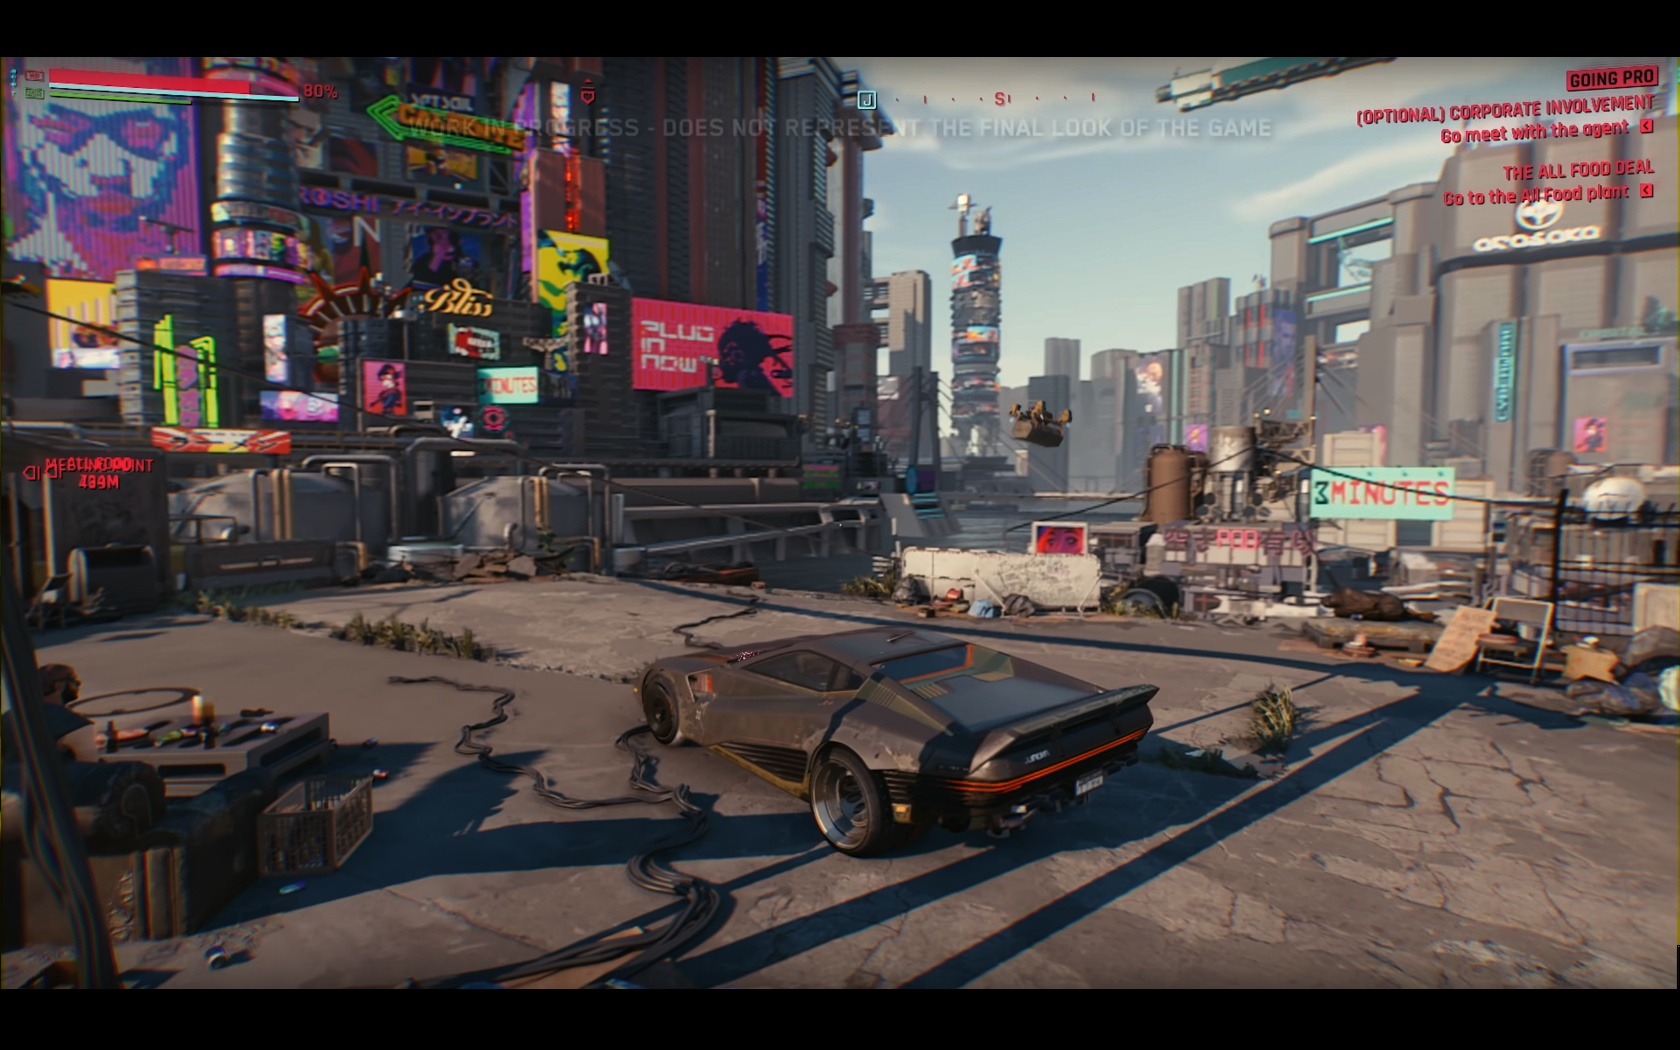 CD Projekt Red - Cyberpunk 2077 - video reveal gameplay - 2018 - screen - sports car QUADRA - city top view